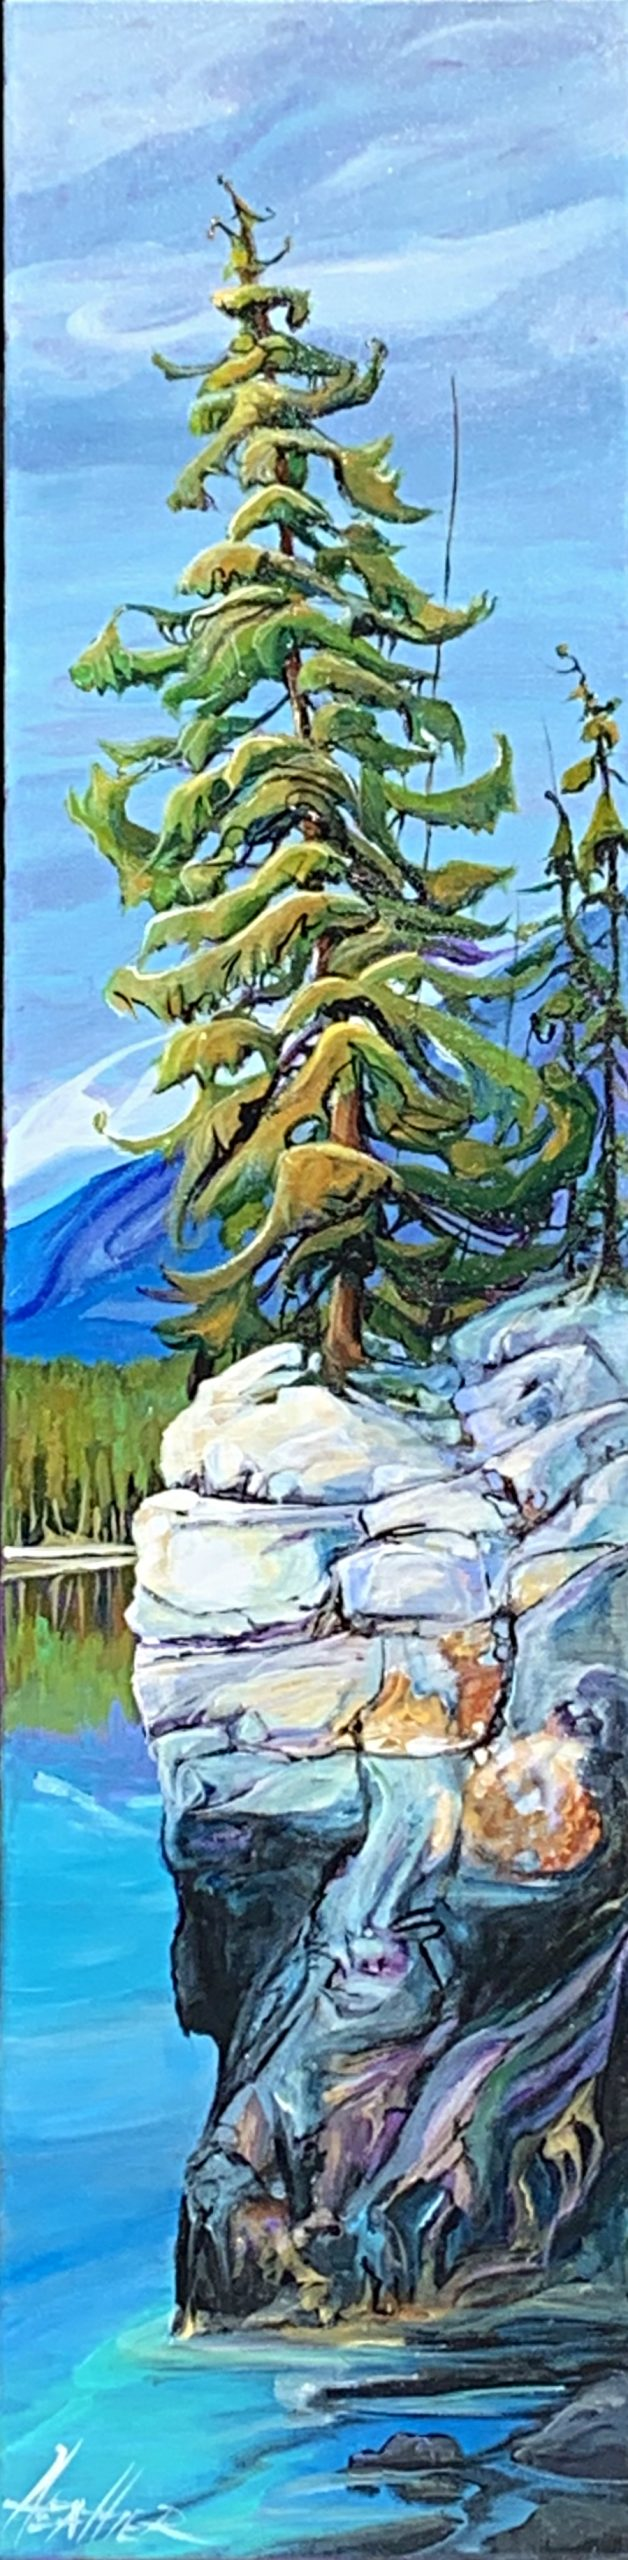 On the Edge, acrylic tree landscape painting by Heather Pant | Effusion Art Gallery + Glass Studio, Invermere BC